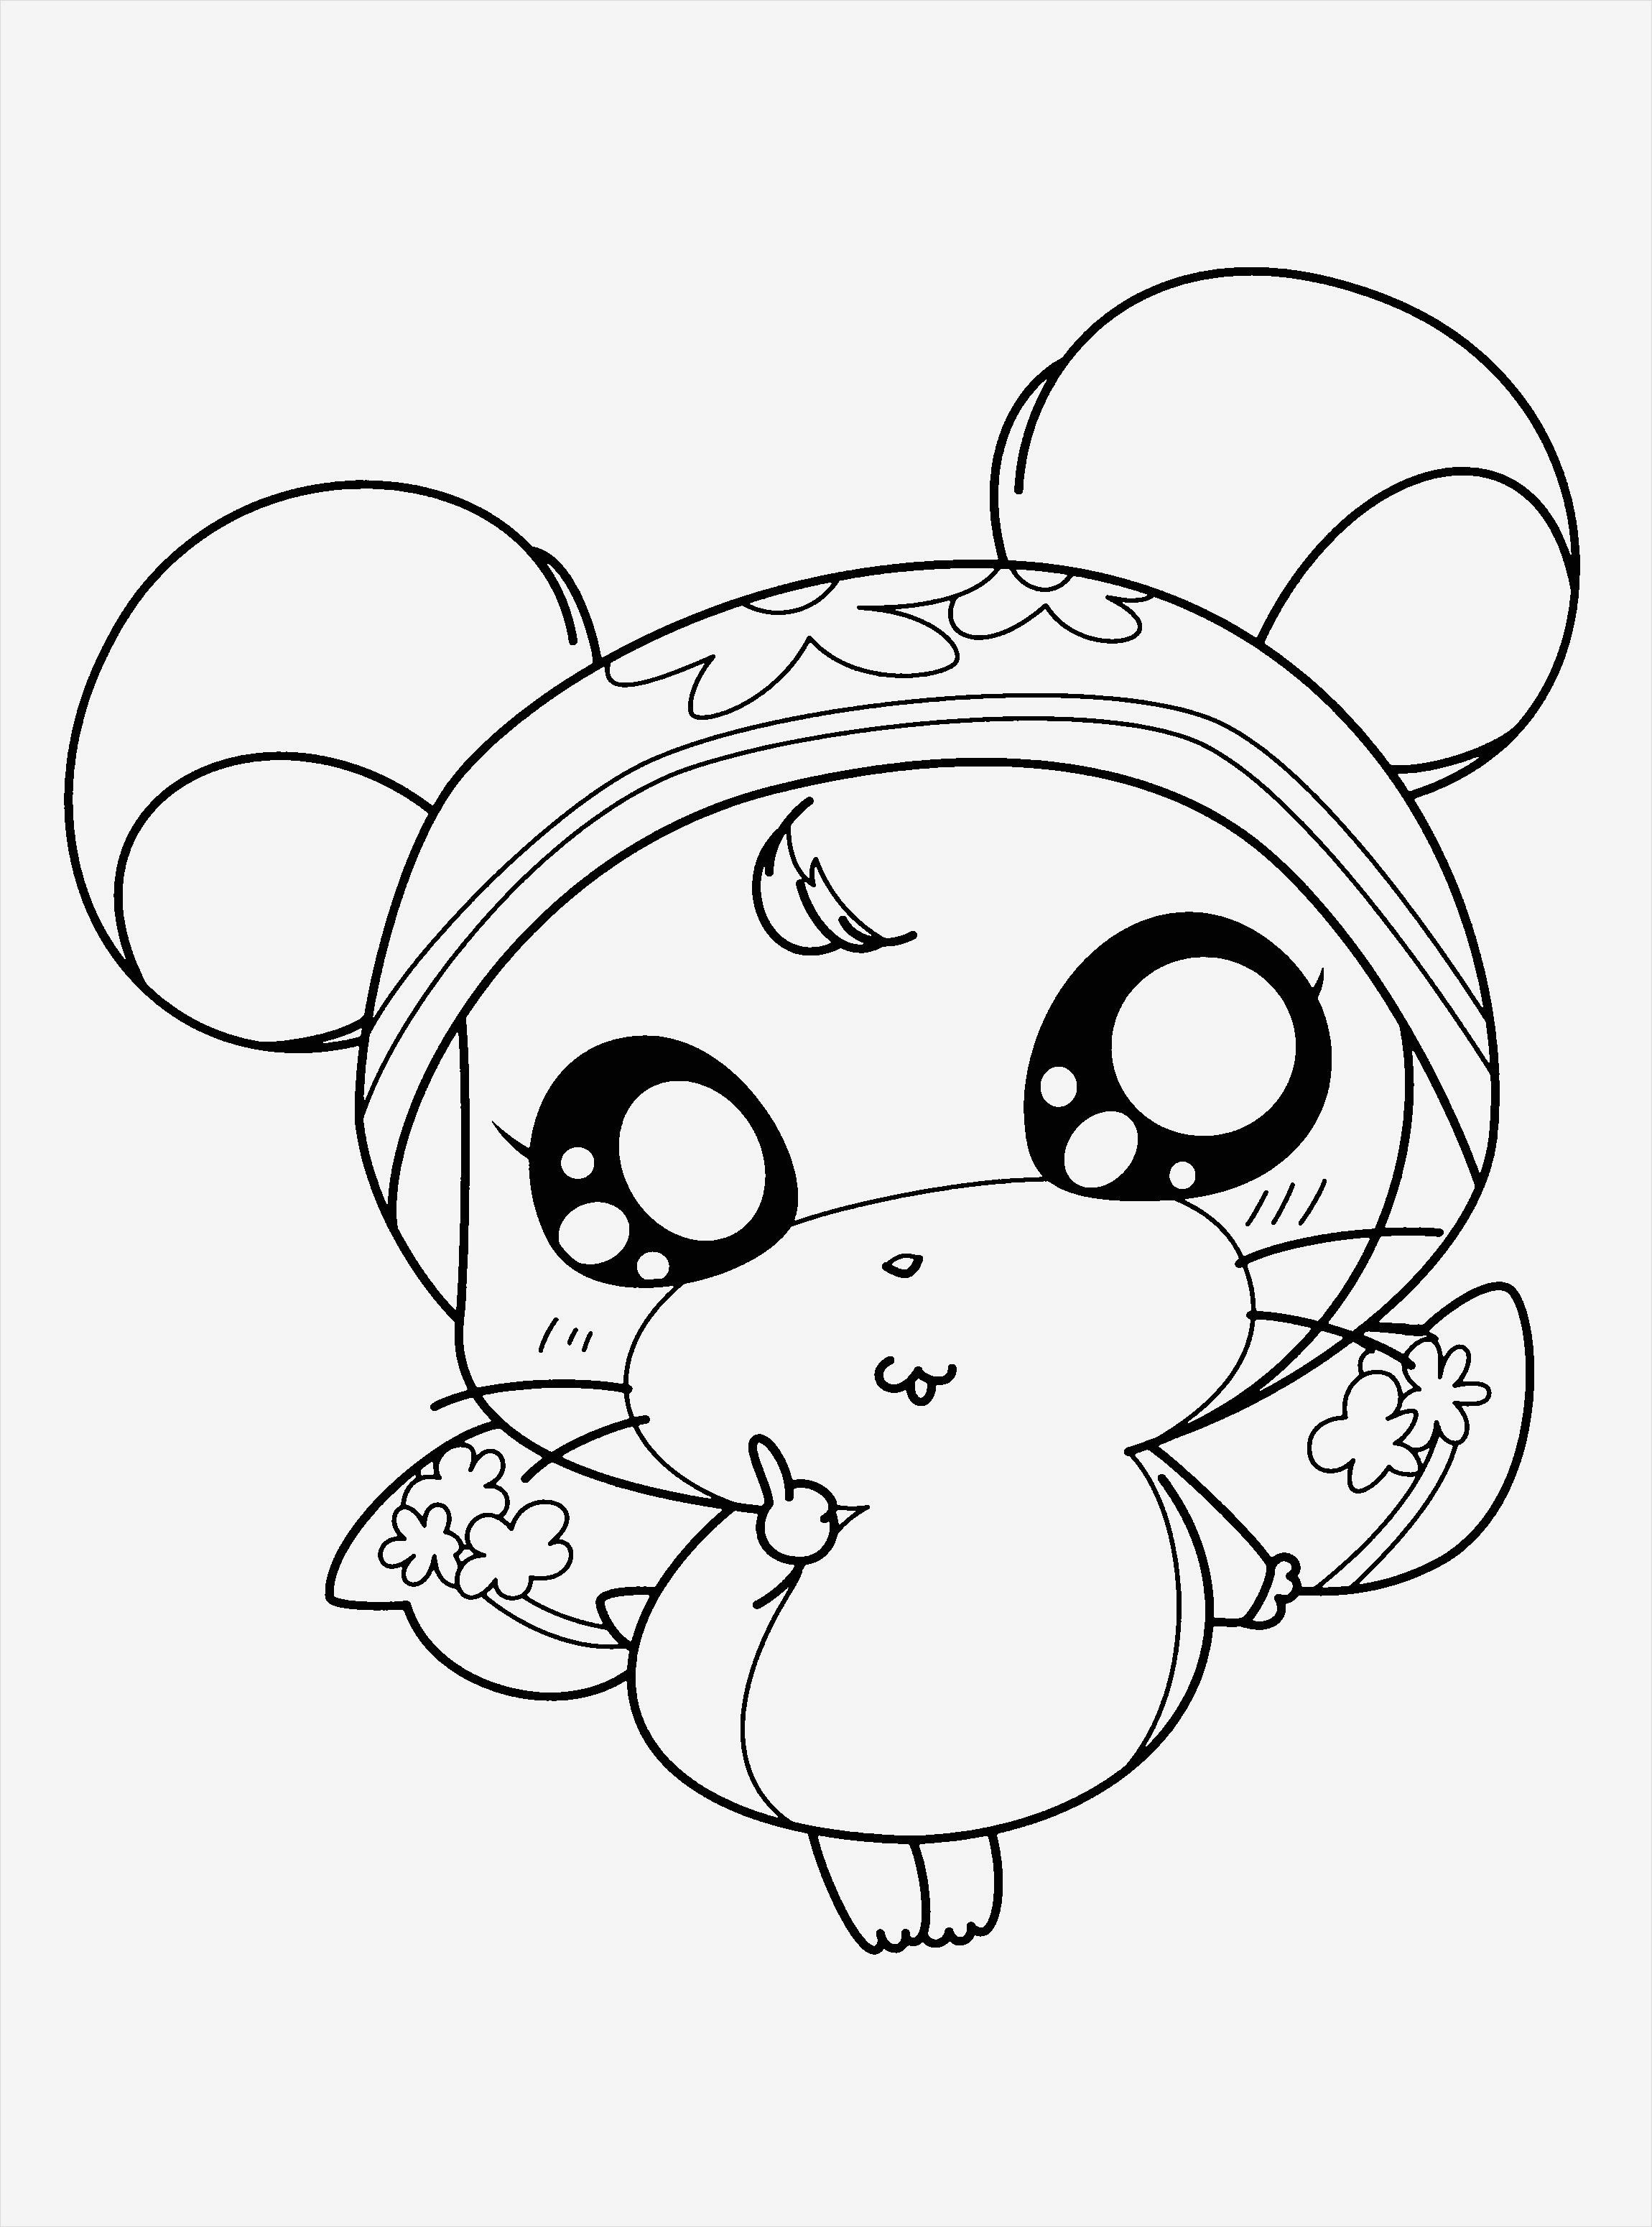 easter coloring pages activities Download-Lily Pad Coloring Page Printable Coloring Pages 13 Awesome Lily Pad Coloring Page 4-i